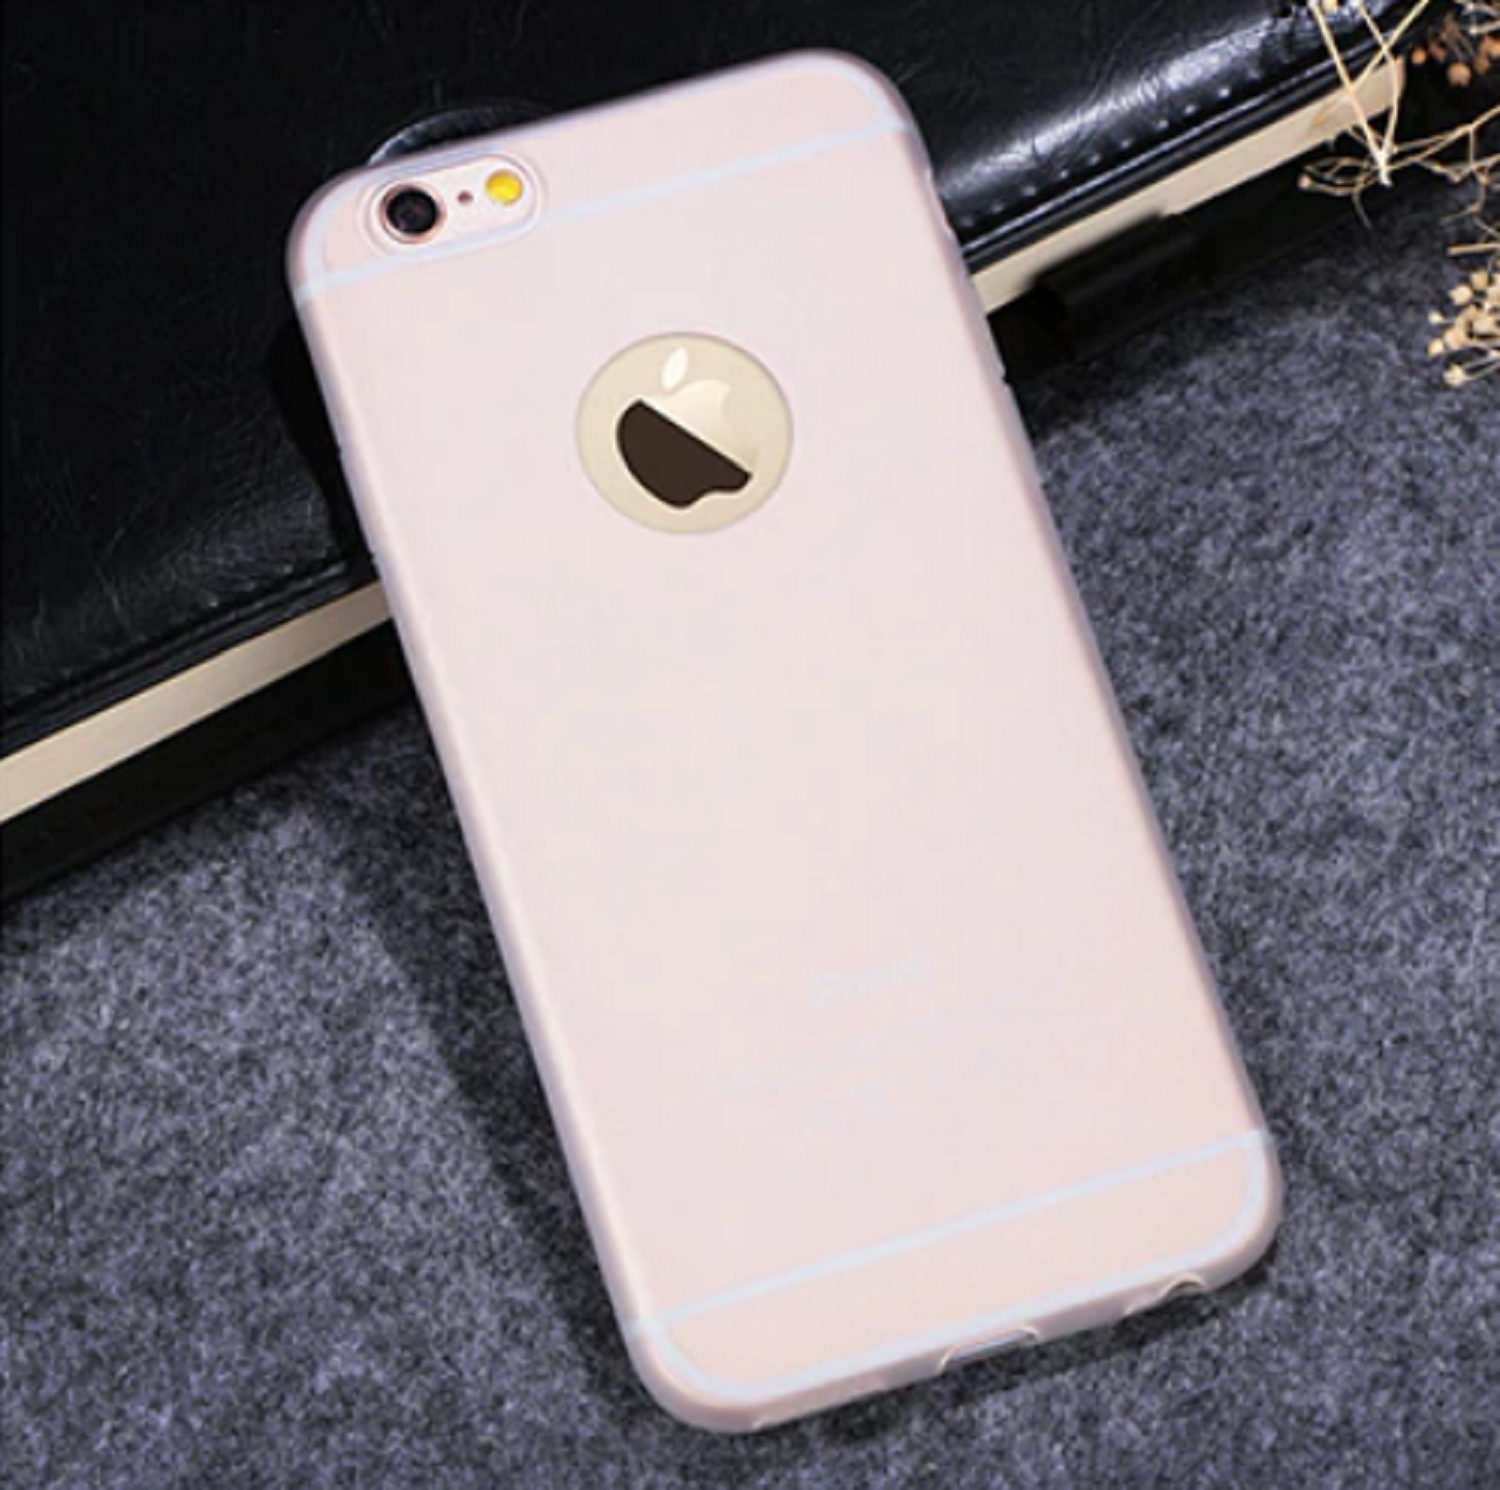 Funda Carcasa Case Iphone Silicona Flexible Ultra Fina Tpu Suave Compatible con iphone 8 Transparente Agujero